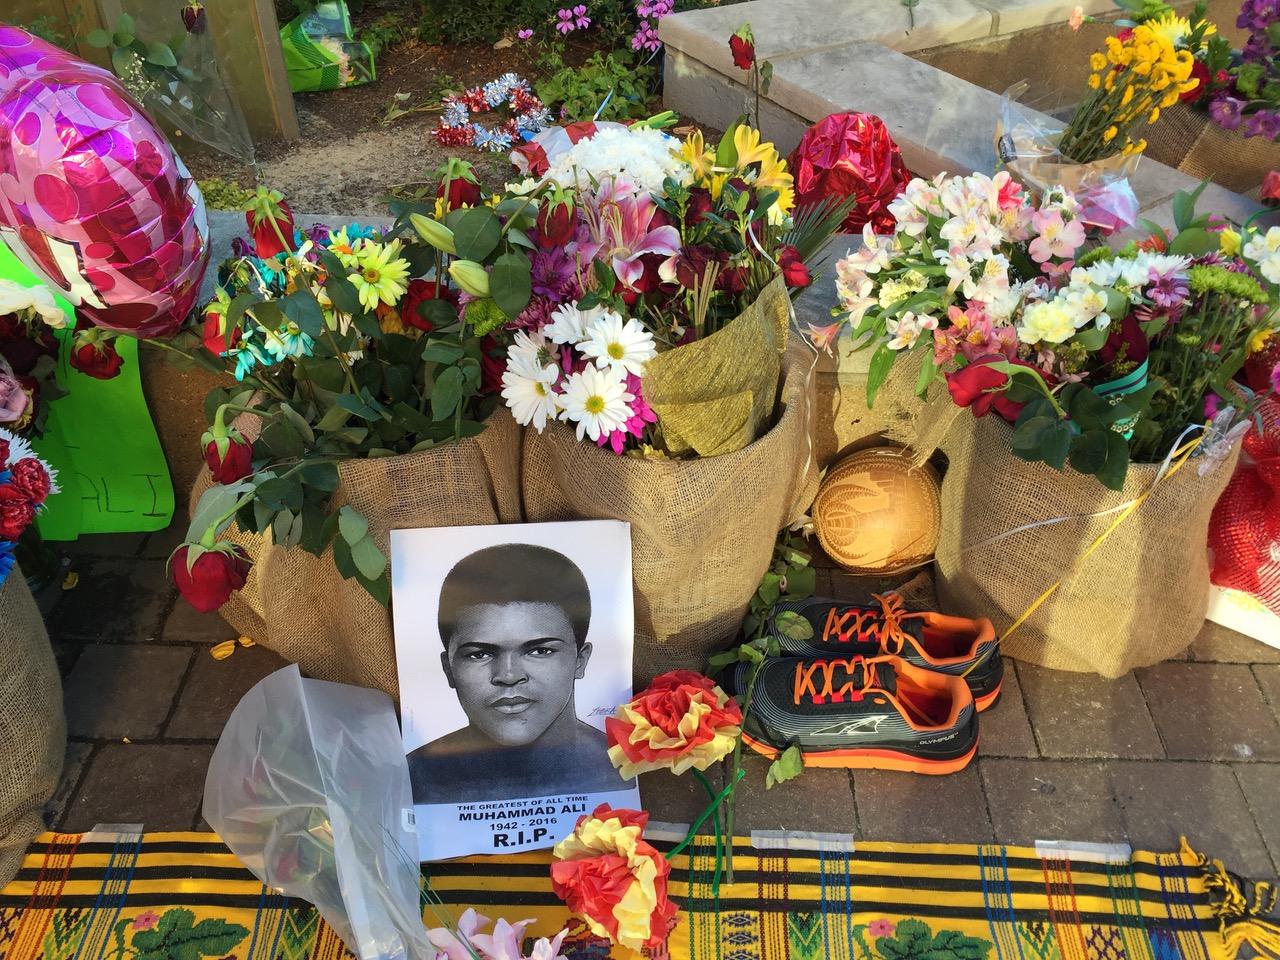 Ali touched the lives of so many. Tribute sites like these allowed people all across the world to mourn his passing.